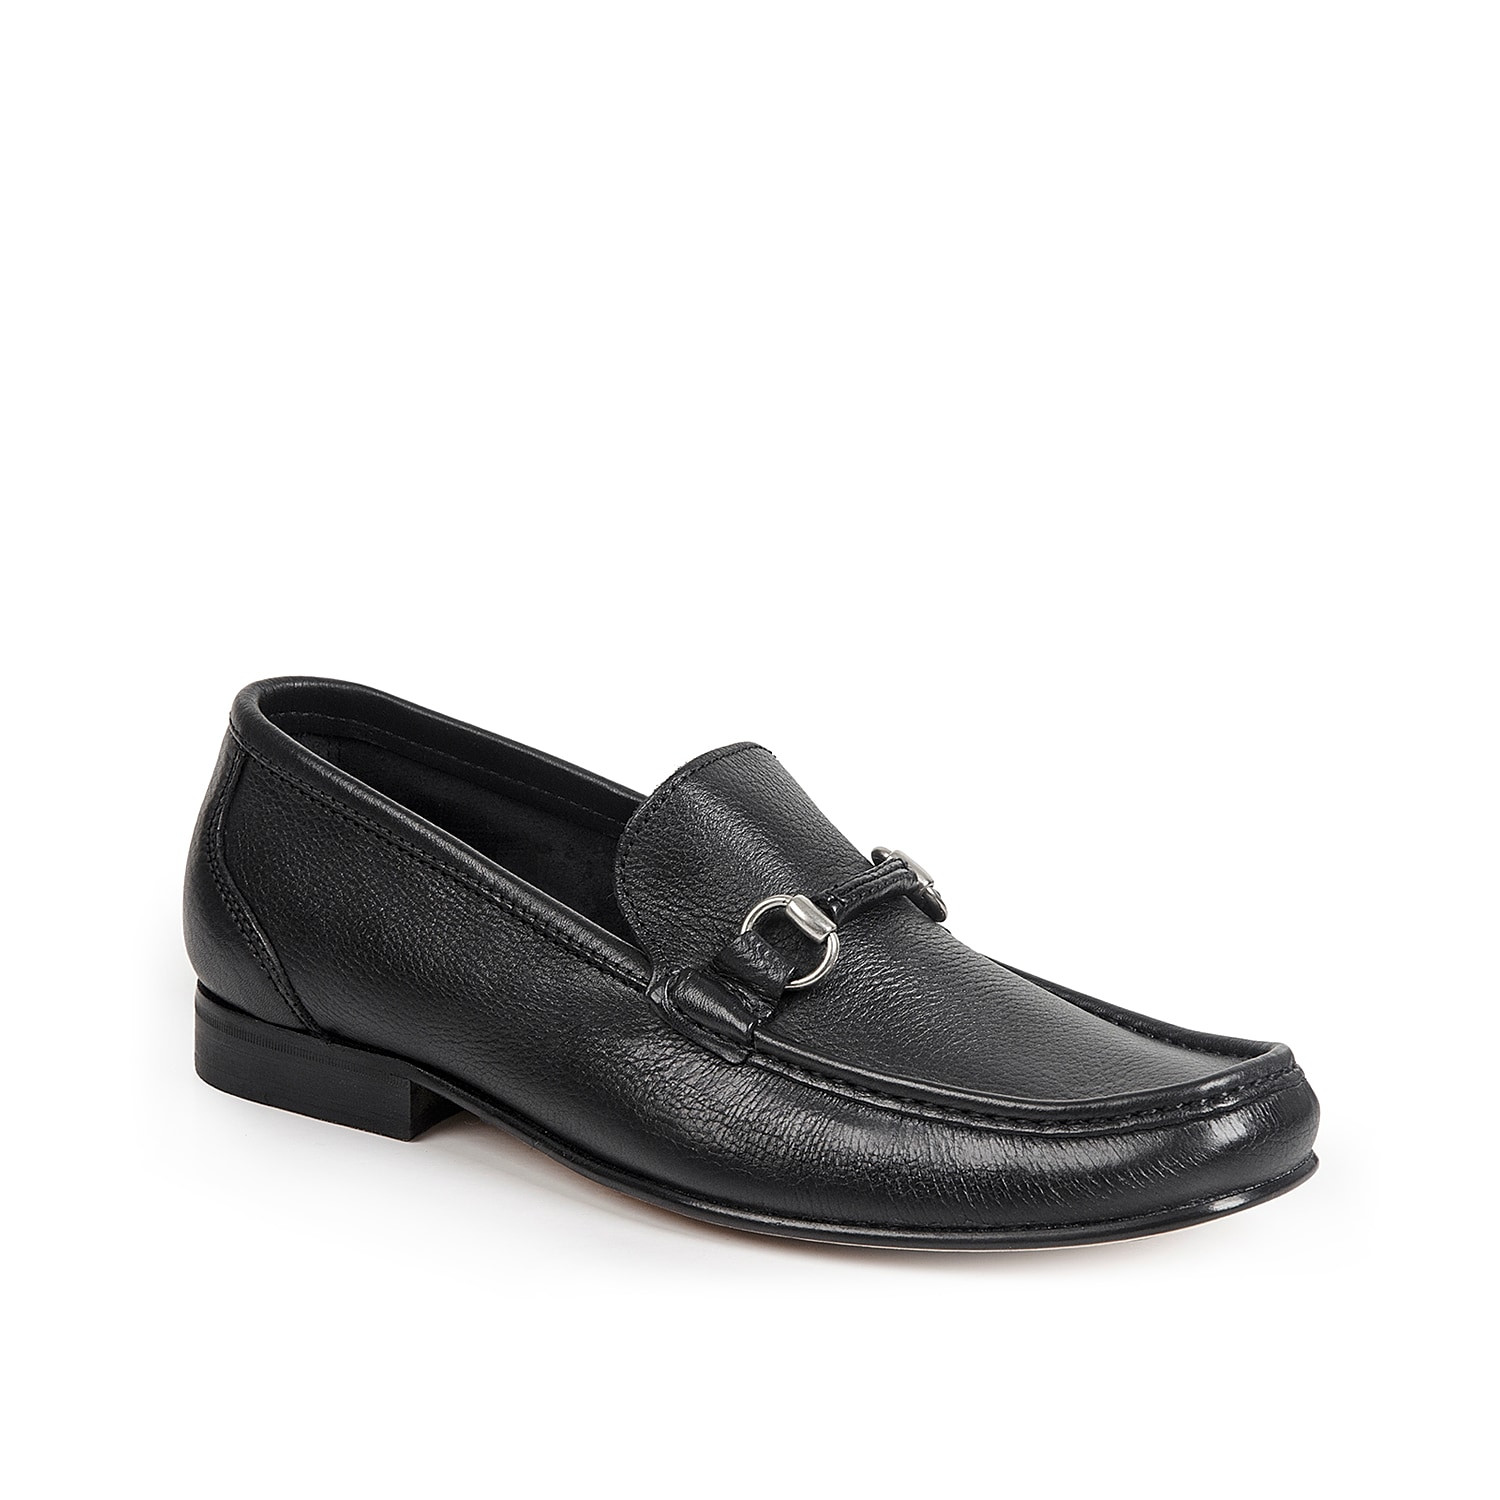 The Amadeo loafer from Sandro Moscoloni flaunts a handsome silhouette with a tailored twist. A smooth leather upper is finished with a metal bit ornament and a slight heel.